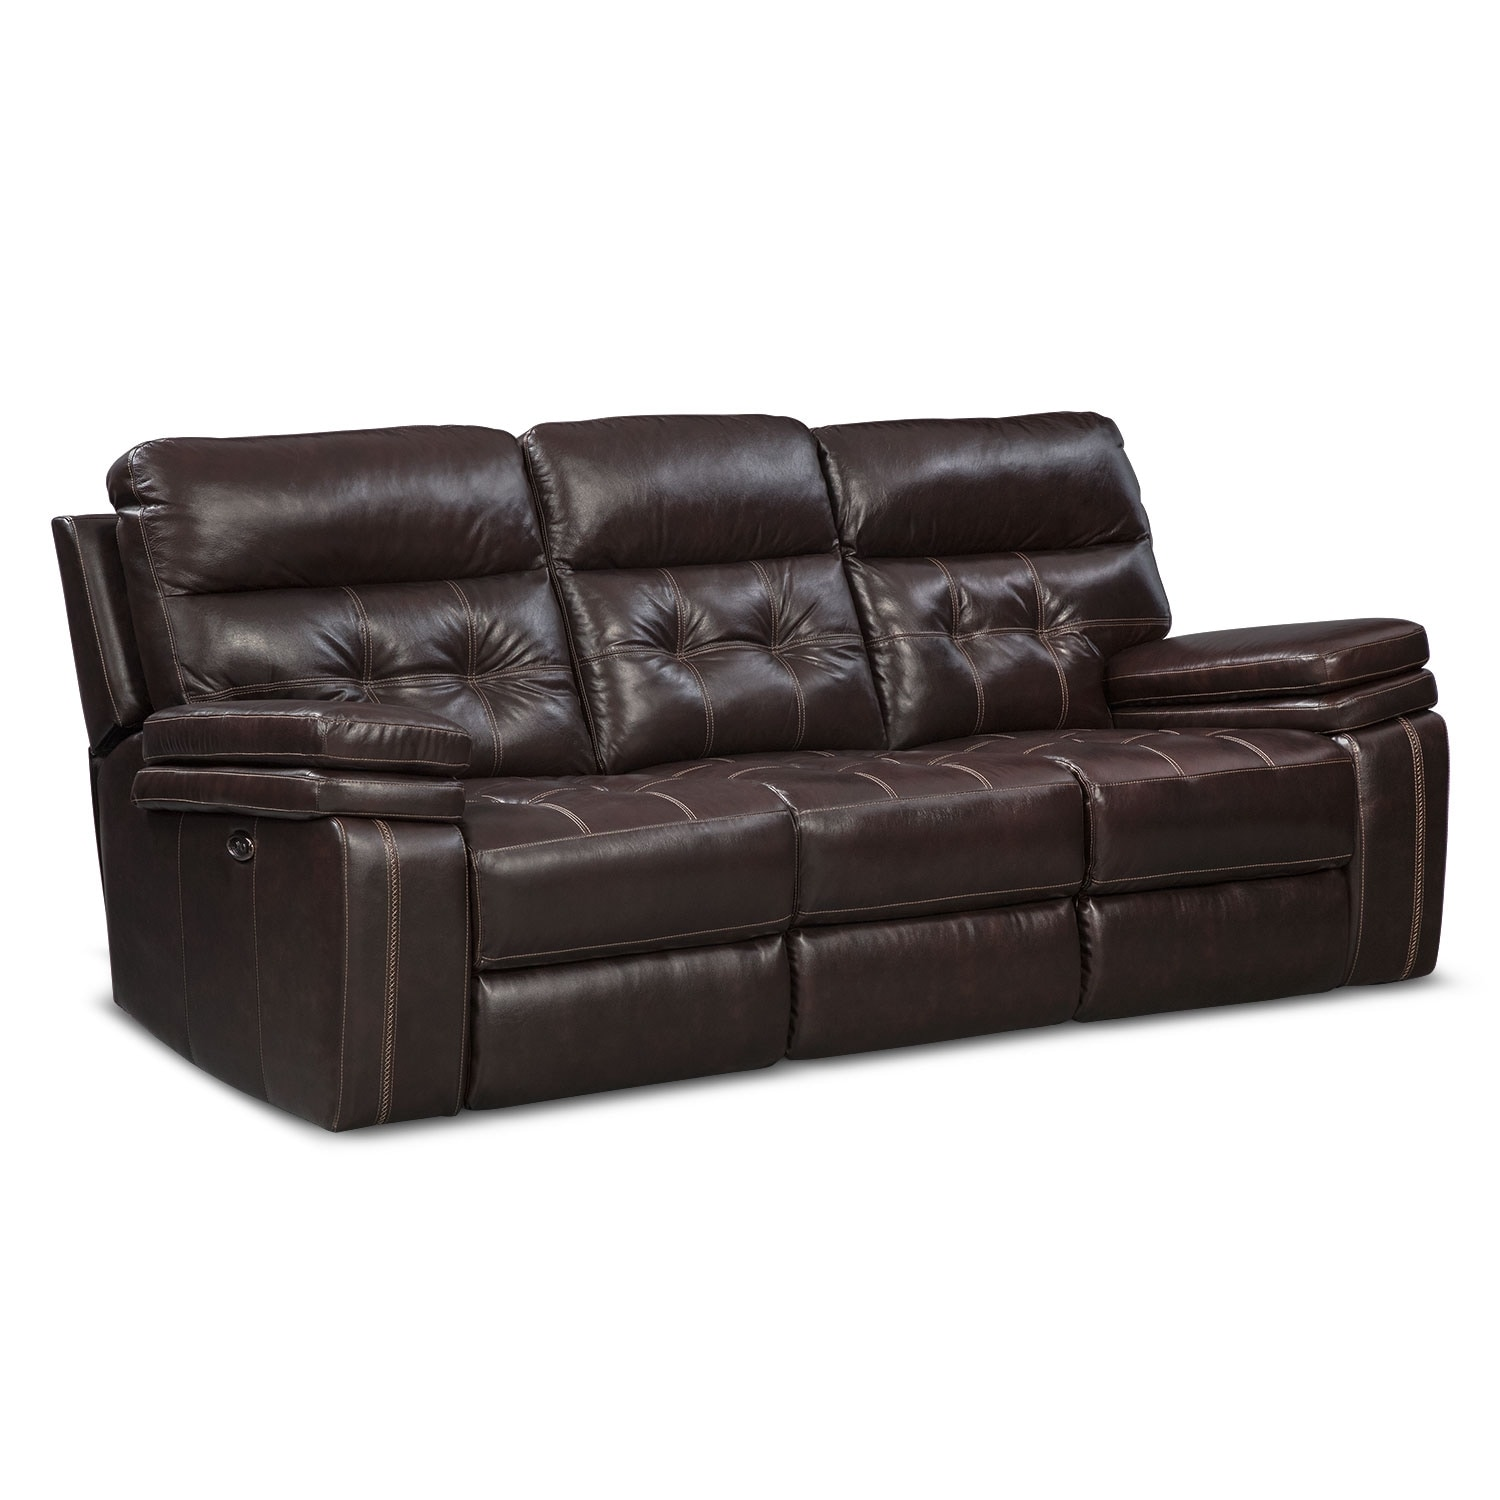 Excellent Overly Power Reclining Sofa Gmtry Best Dining Table And Chair Ideas Images Gmtryco